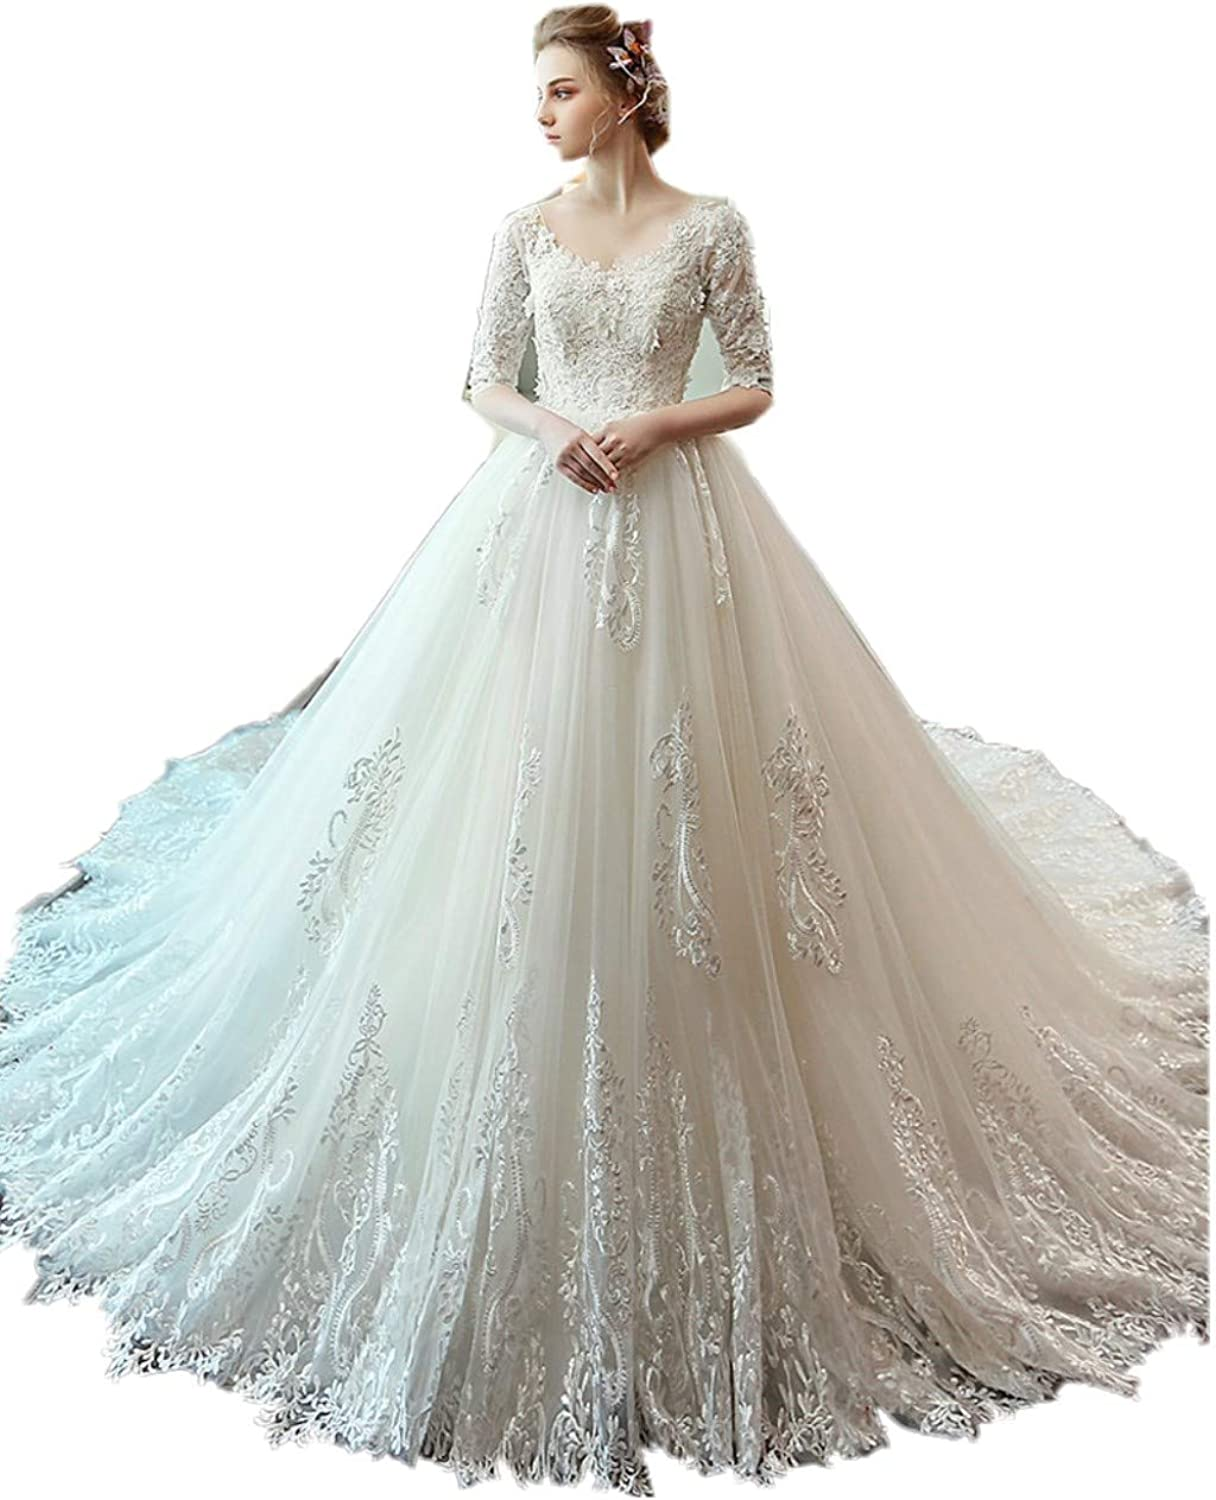 Darcy74Dulles Women's Long Sleeves White Ball Gown Bridal Wedding Gowns Tulle Appliques Dresses Sparkly